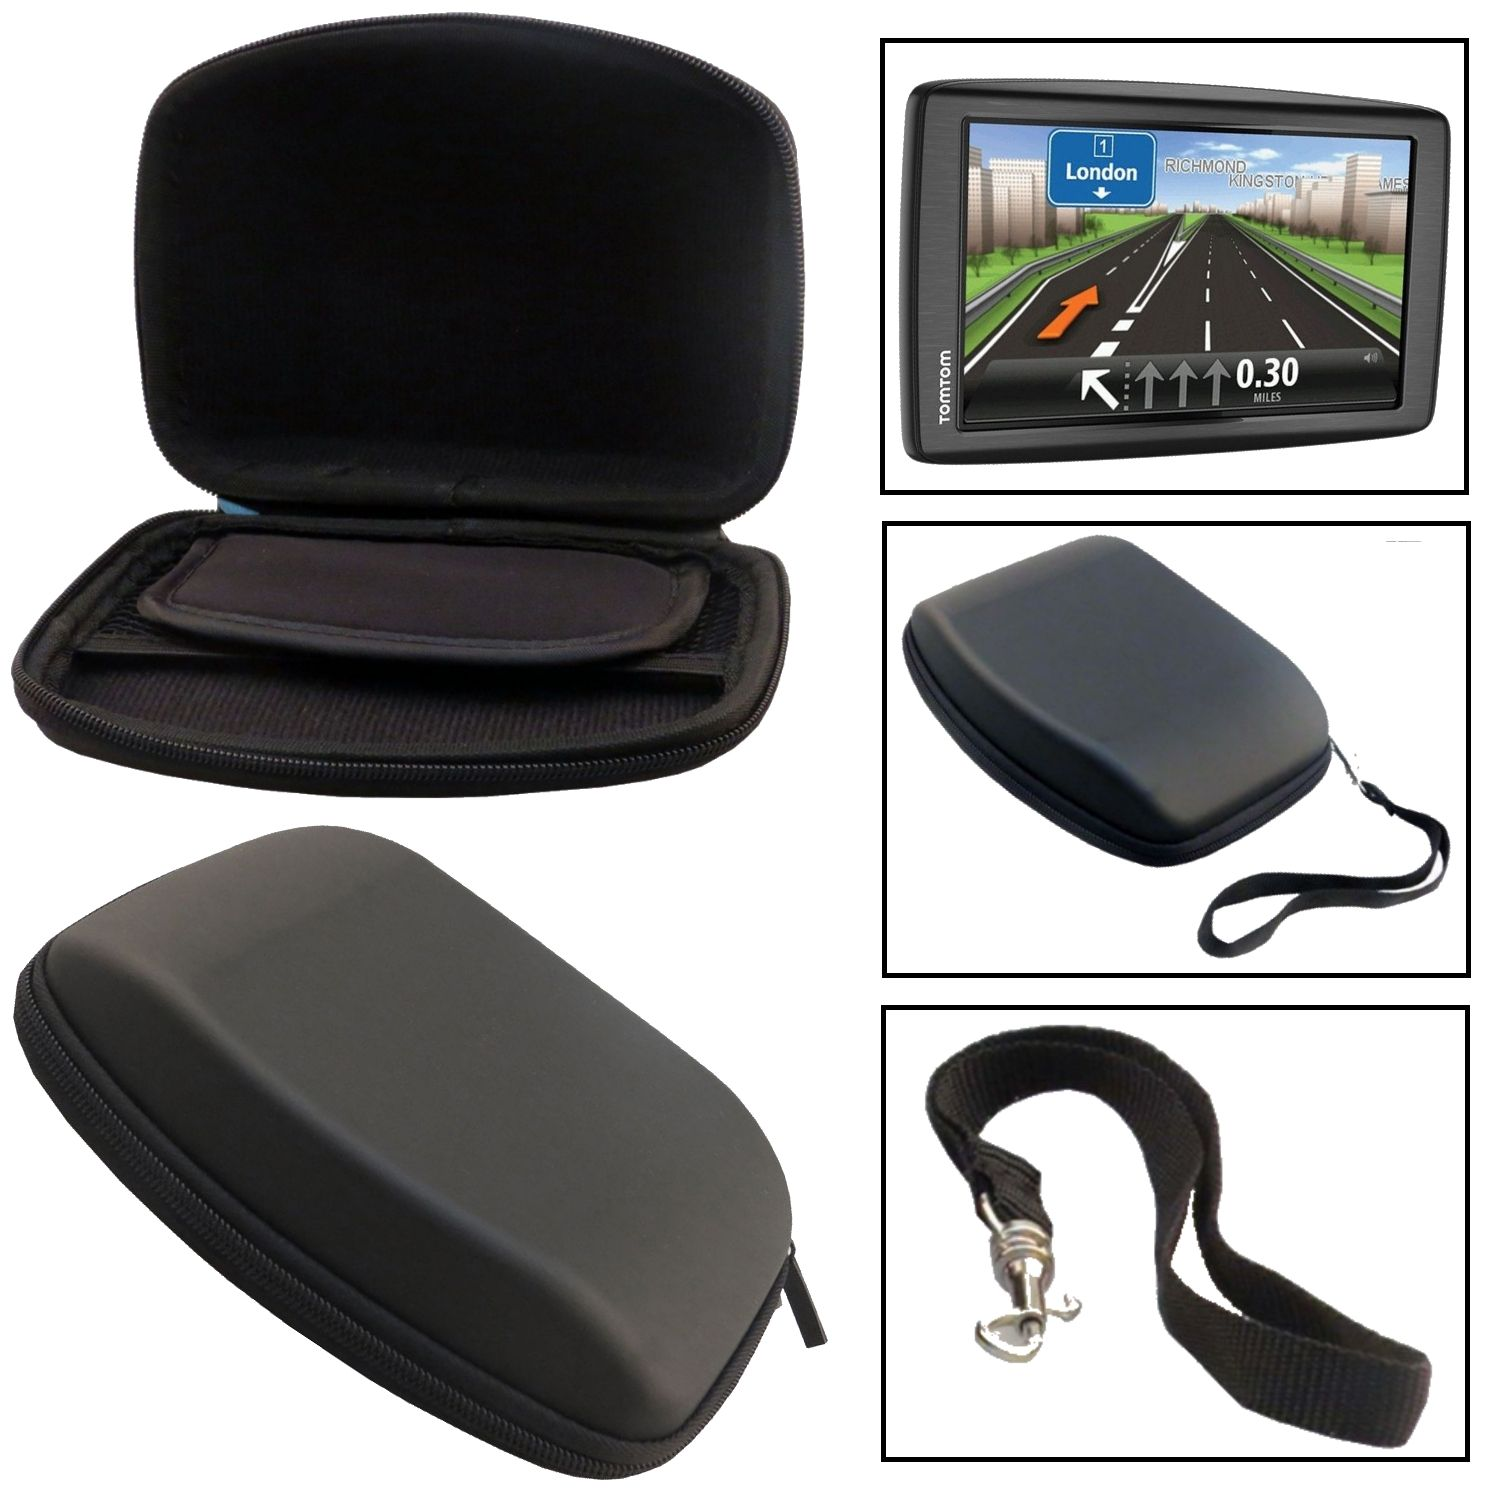 tui de transport rigide en voiture sat nav boitier support pour gps tomtom xl ebay. Black Bedroom Furniture Sets. Home Design Ideas